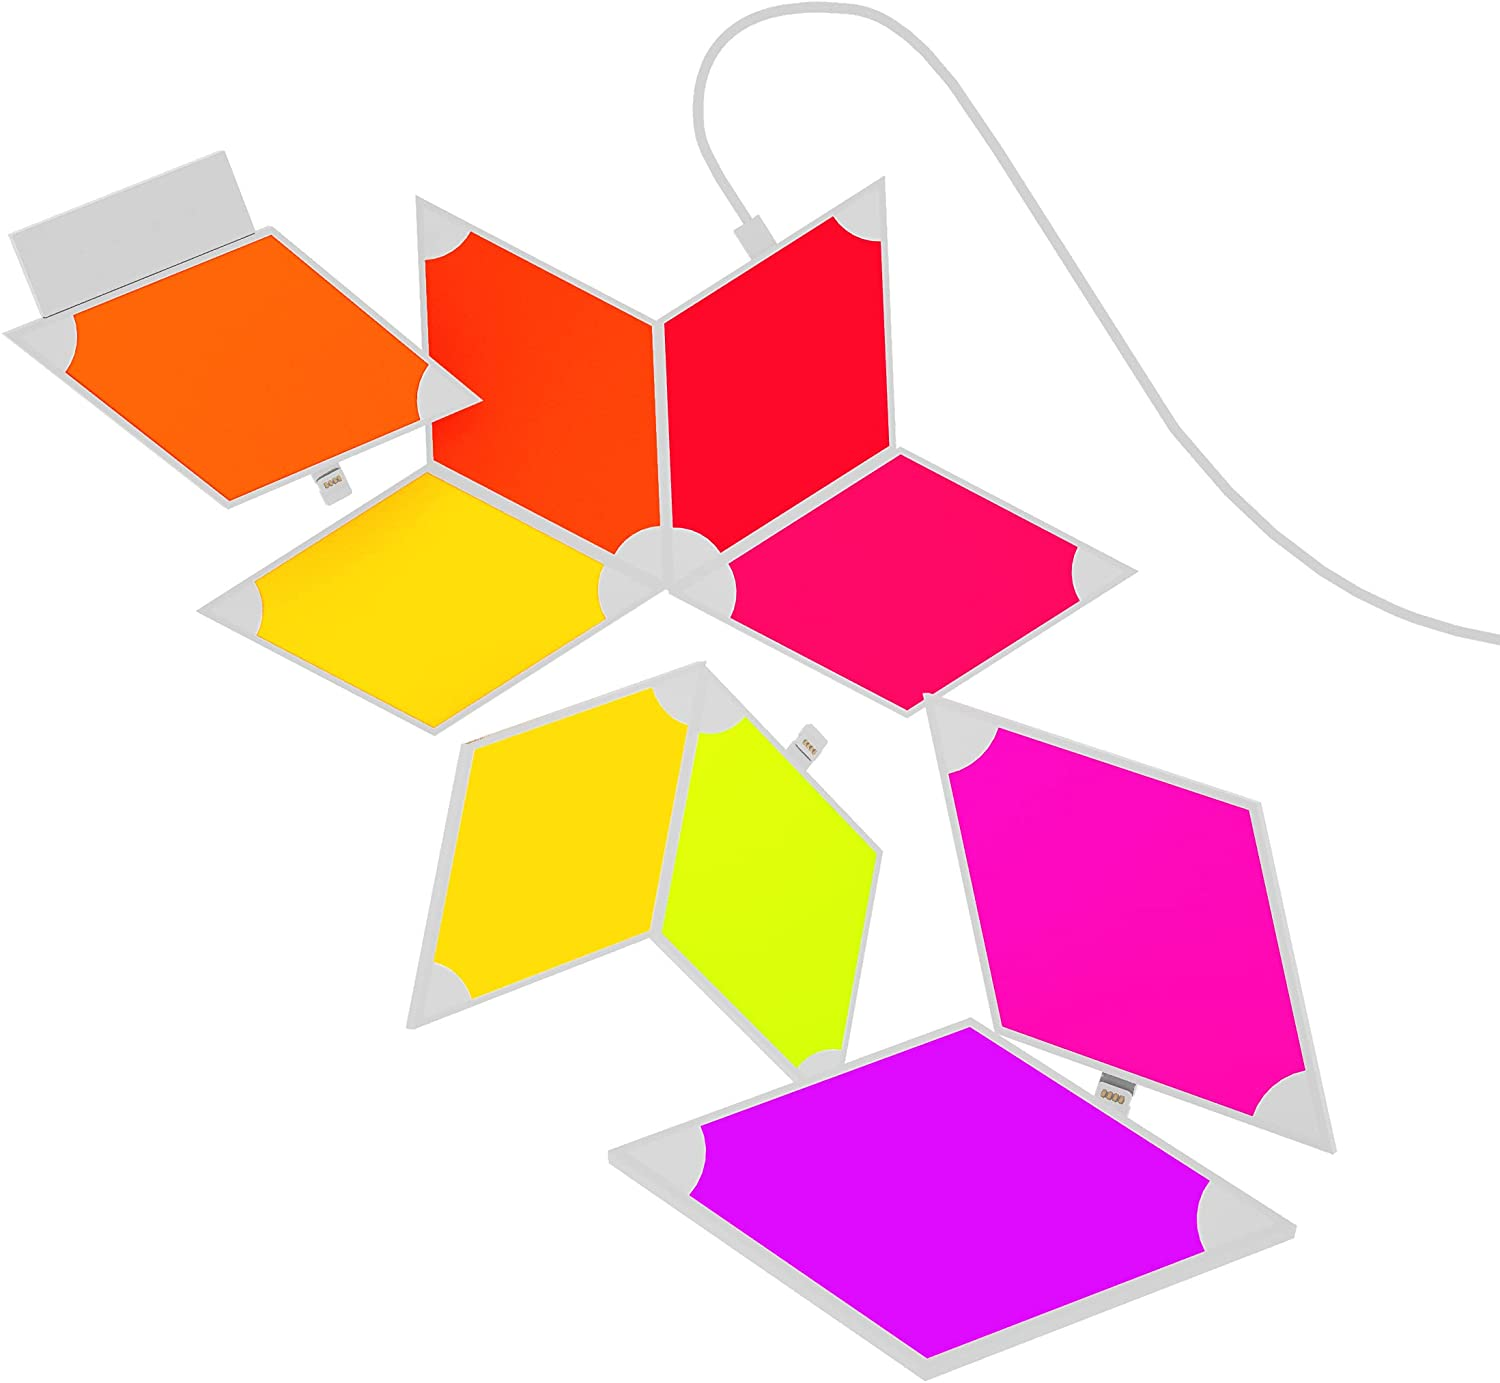 Triangle Light Panels Wall-Mounted Smart Kit, WiFi Lighting Lamp RGB LED Wall Light Panels Gaming Room, Party Decor enlarge